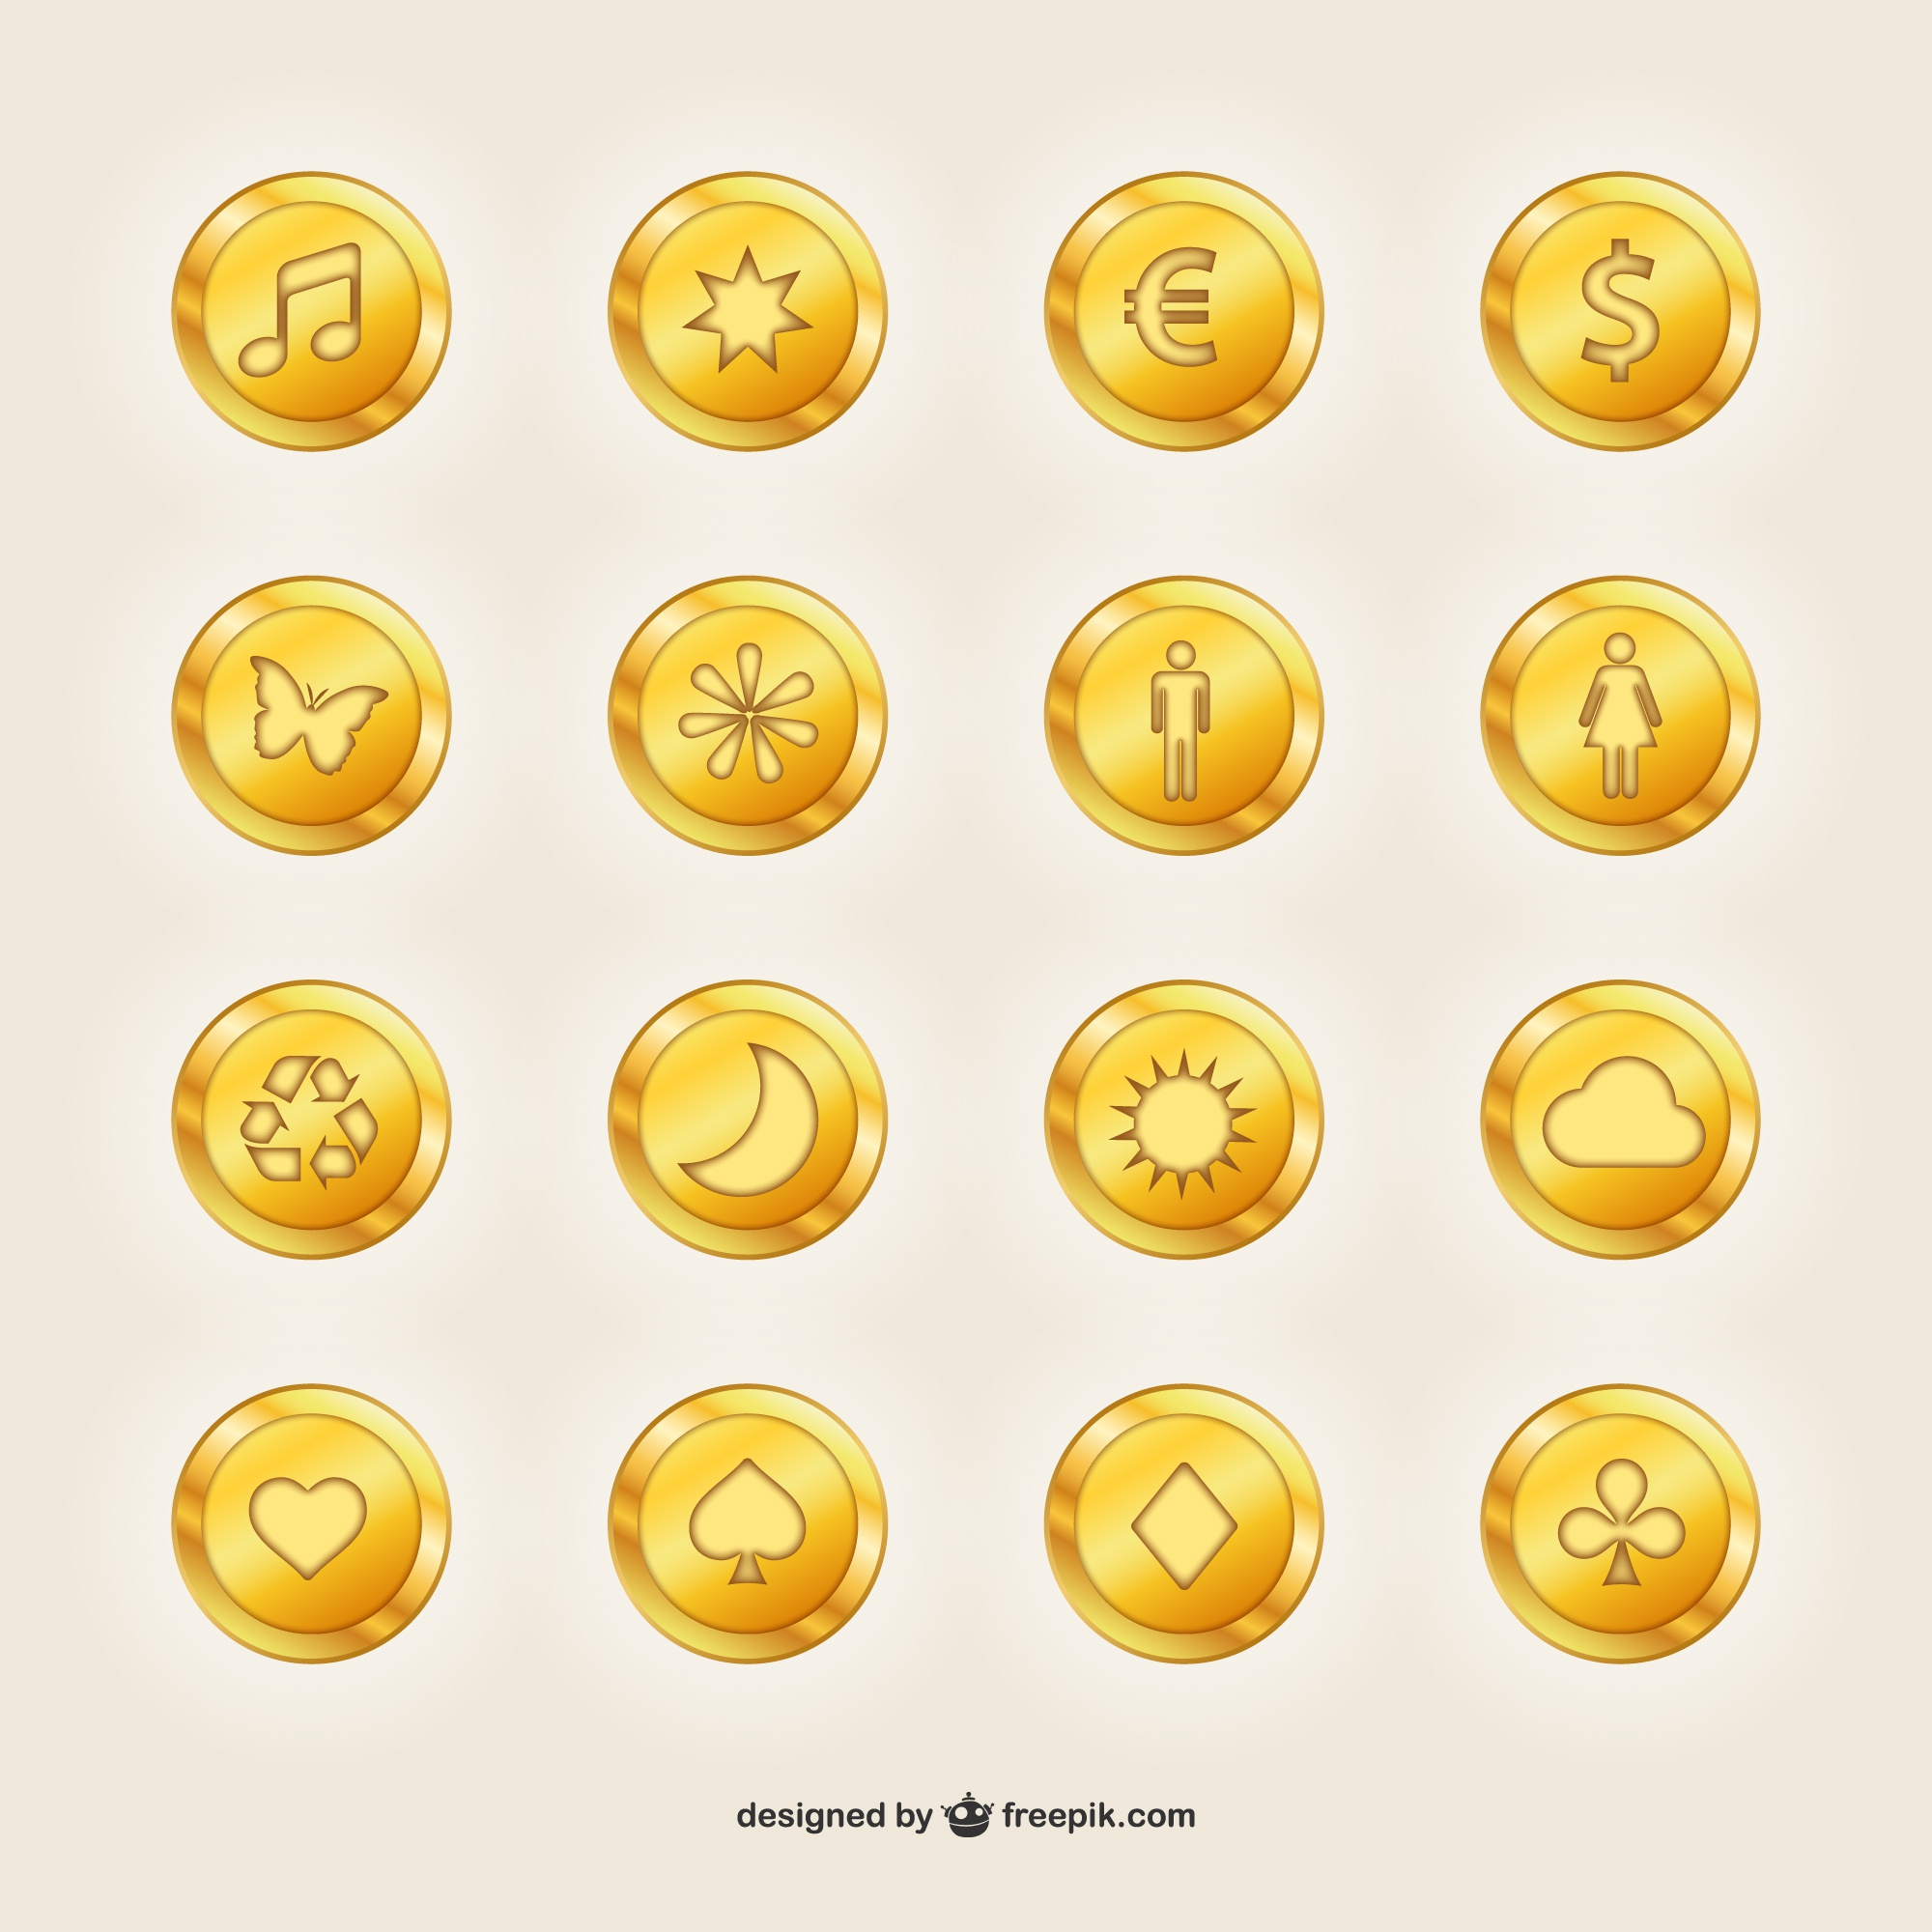 Golden coins with symbols